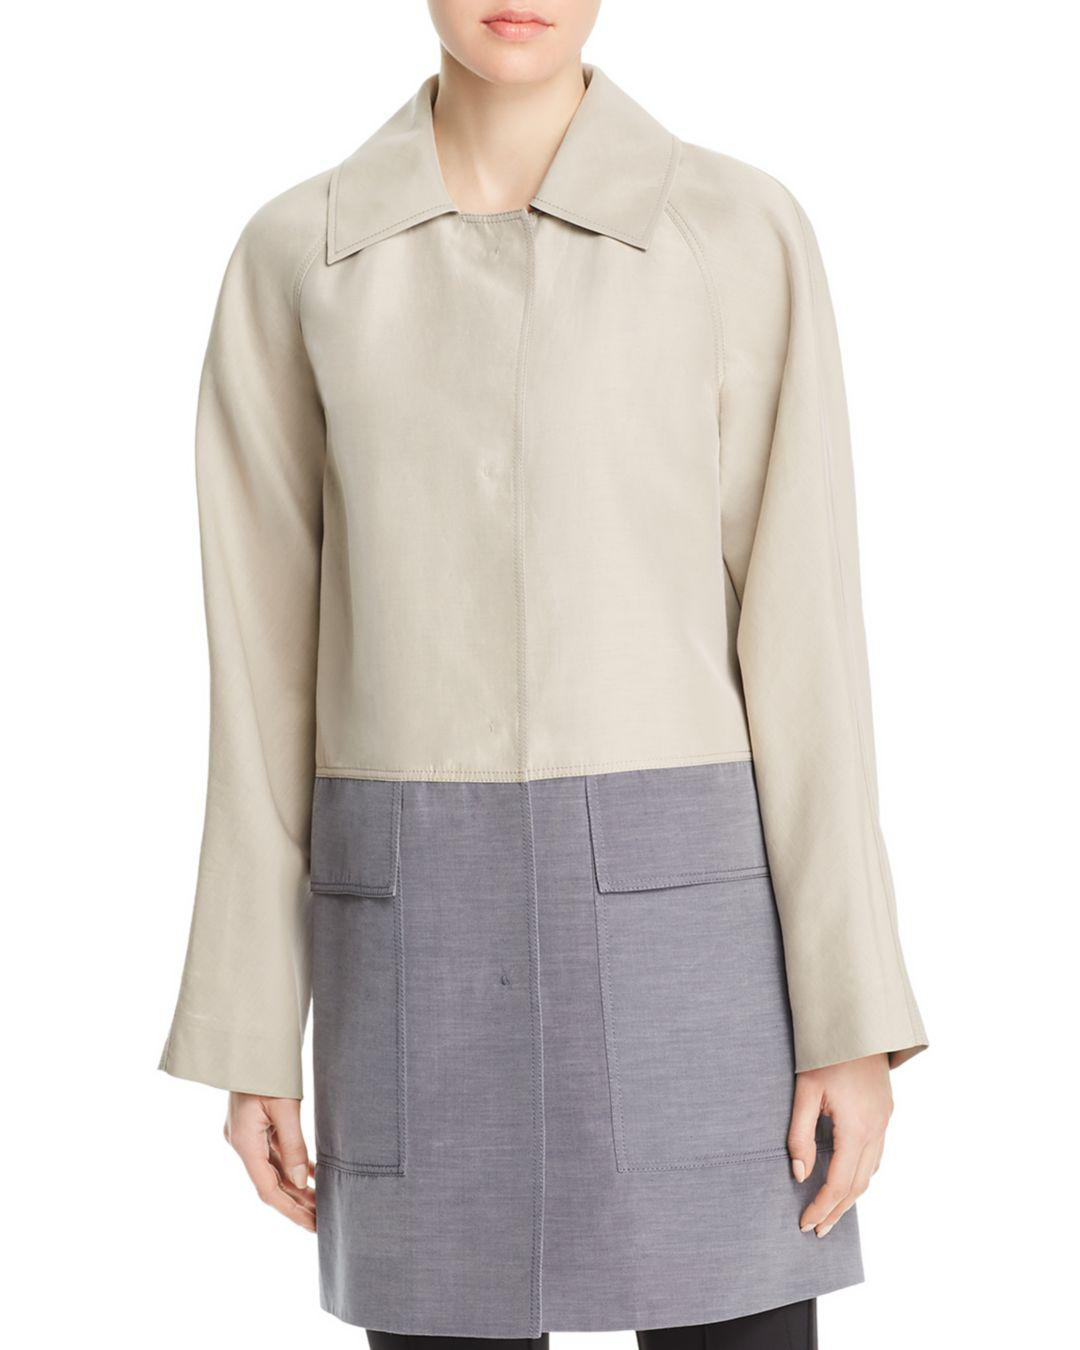 55b1ccefaed93 Lyst - Lafayette 148 New York Maryann Color-block Coat